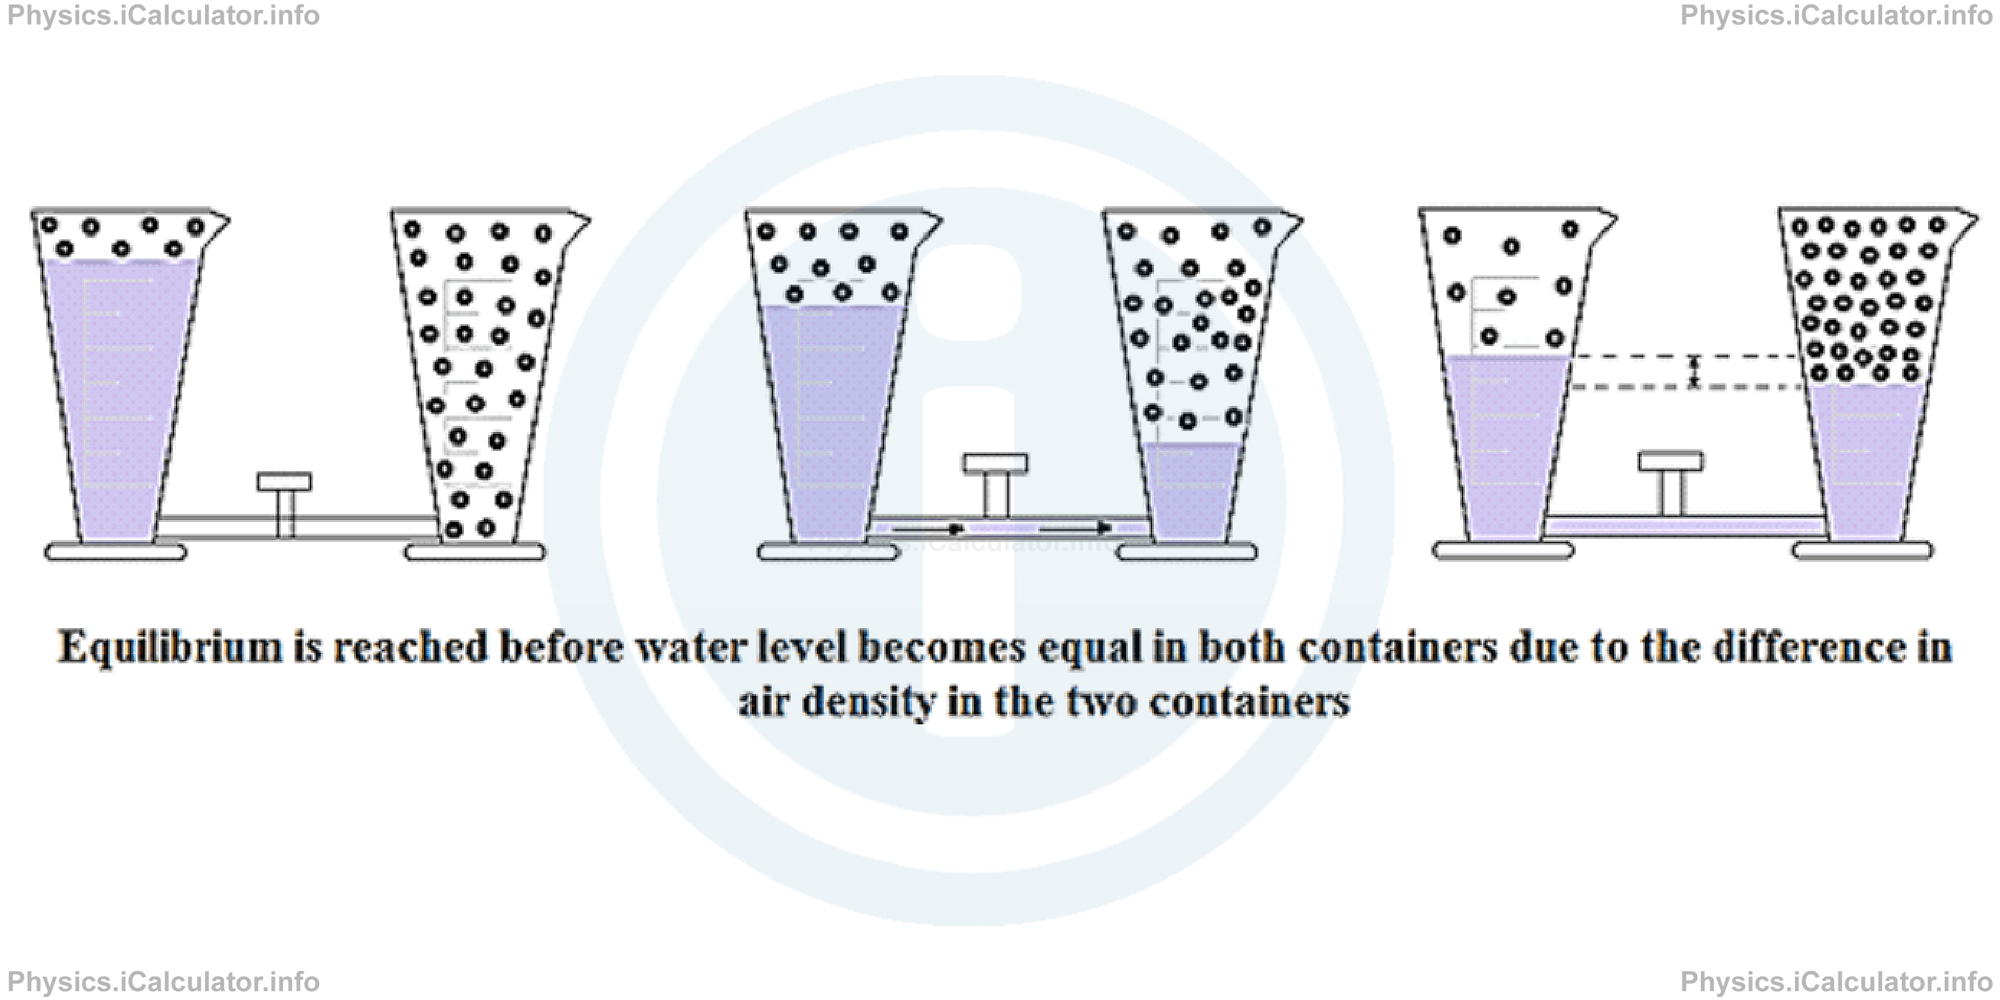 Physics Tutorials: This image provides visual information for the physics tutorial Electric Current. Current Density